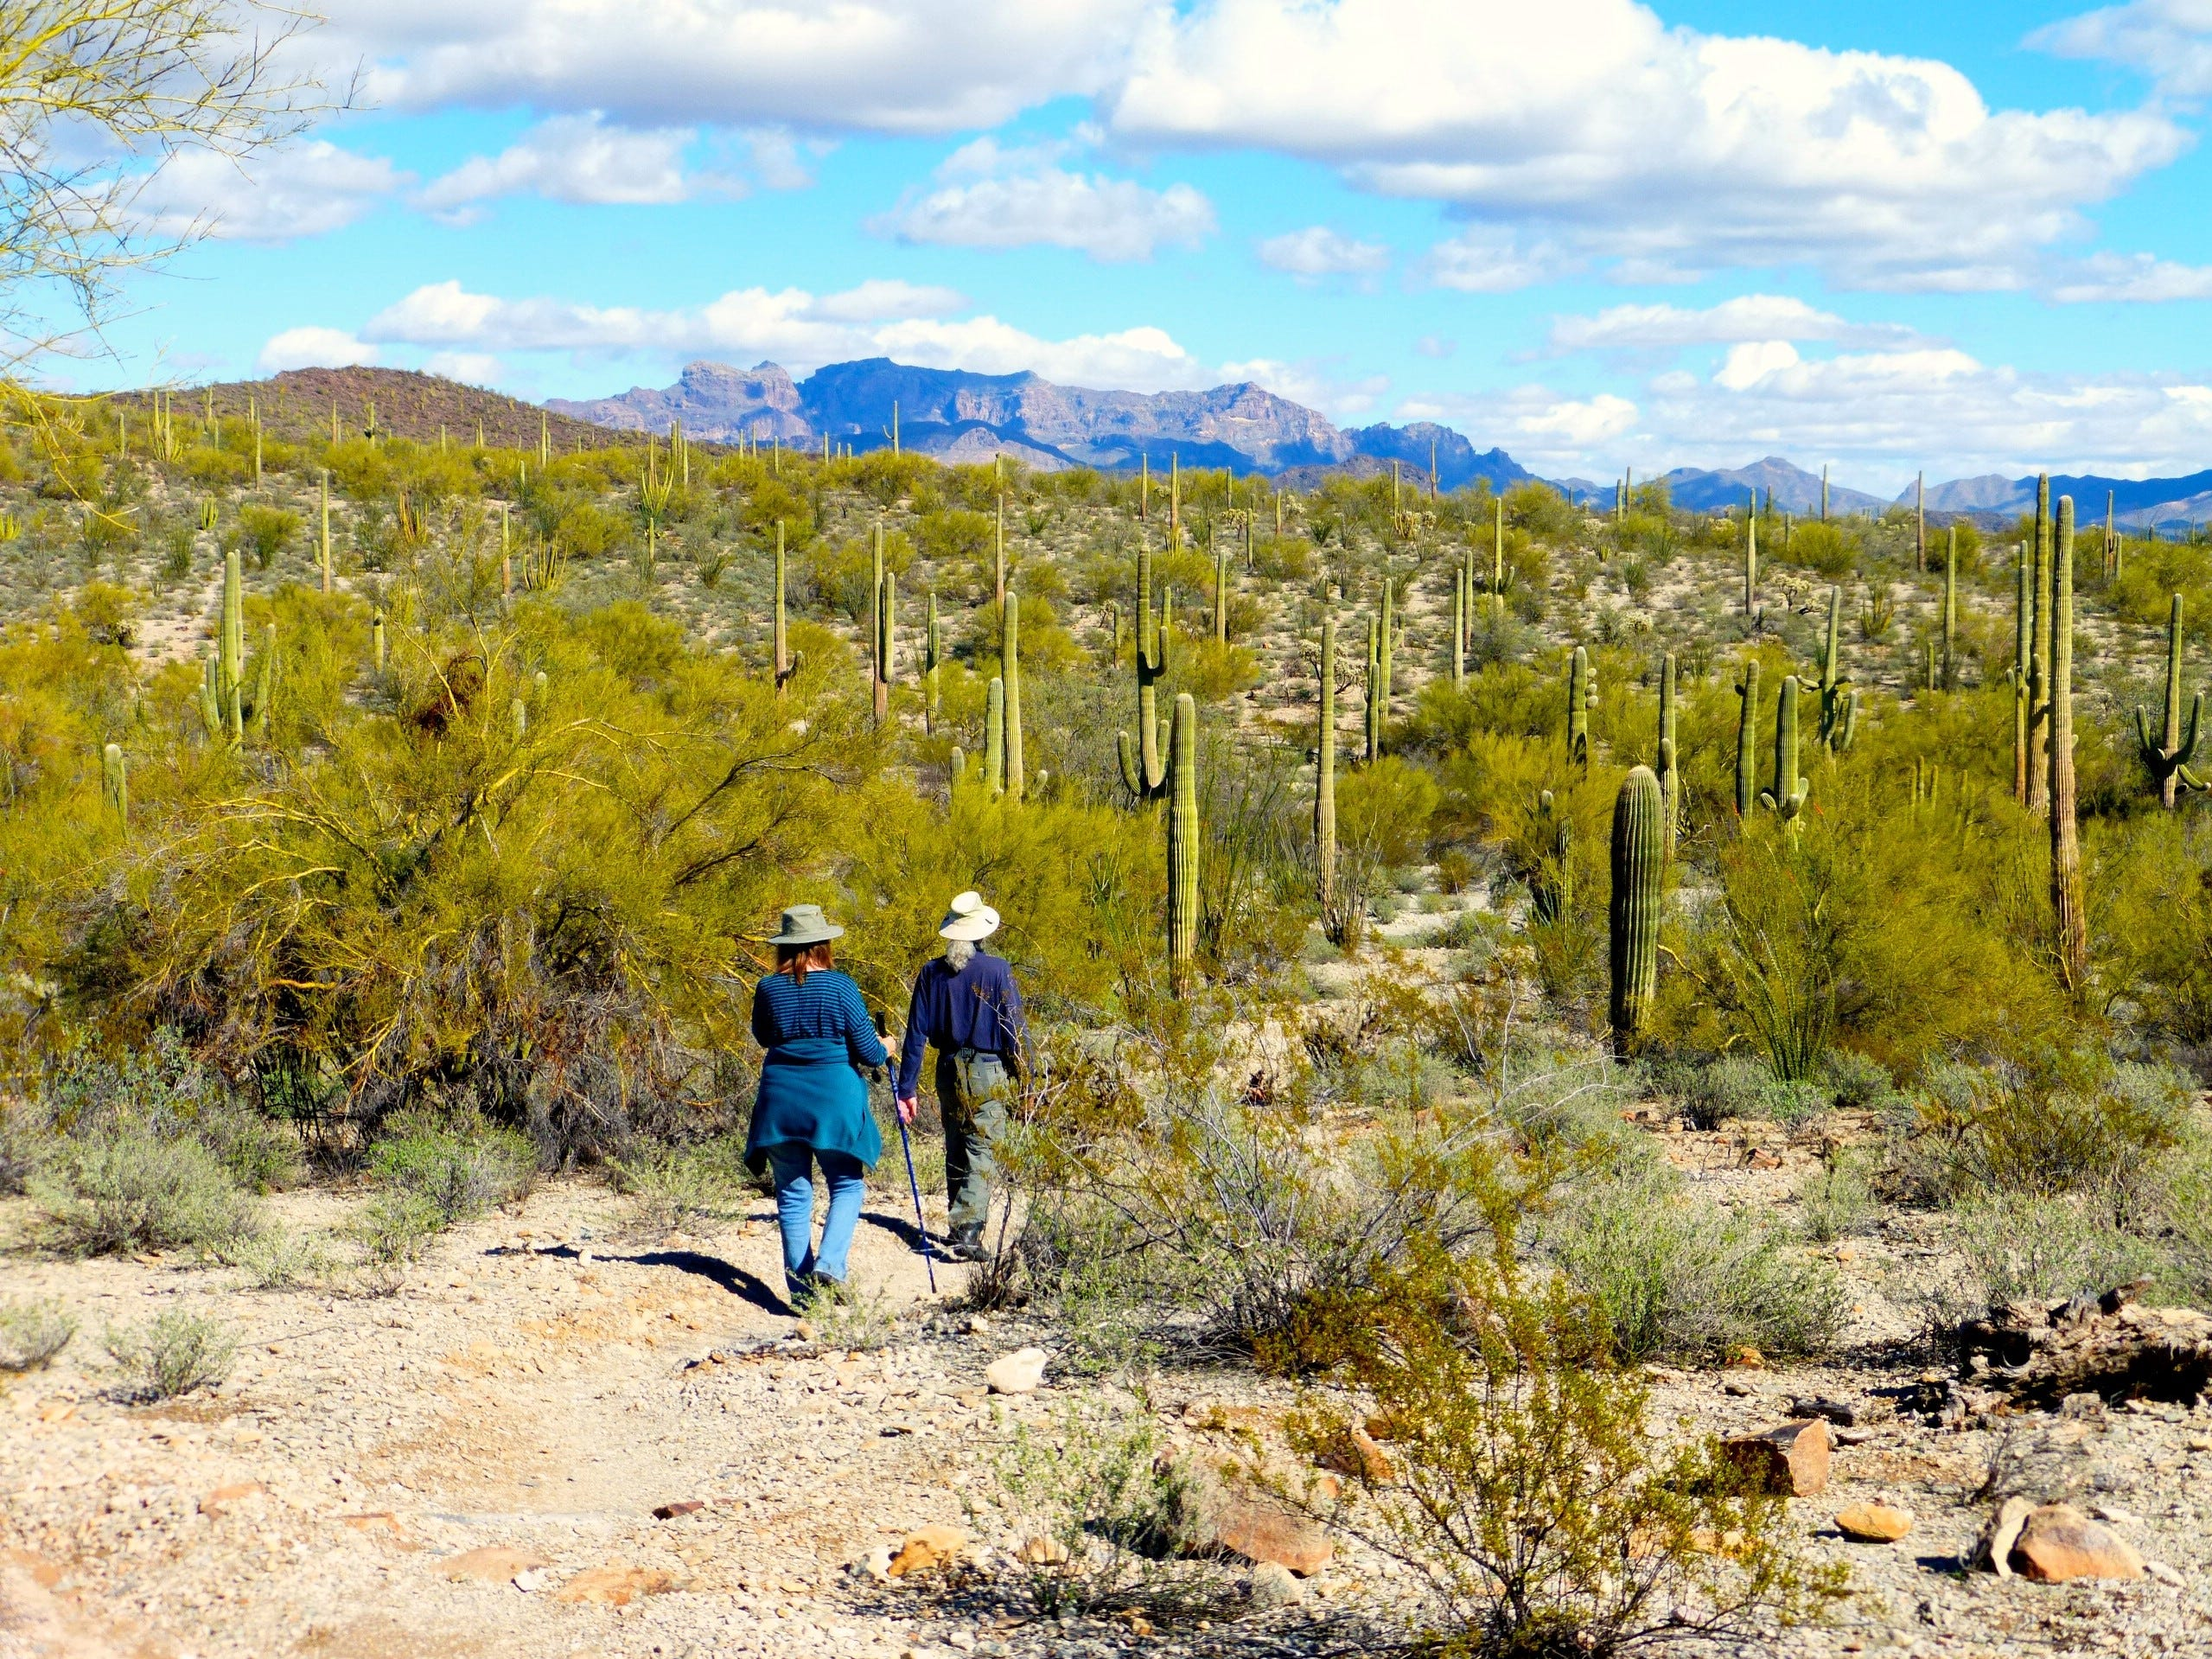 The town of Why sits near the northern border of Organ Pipe Cactus National Monument.